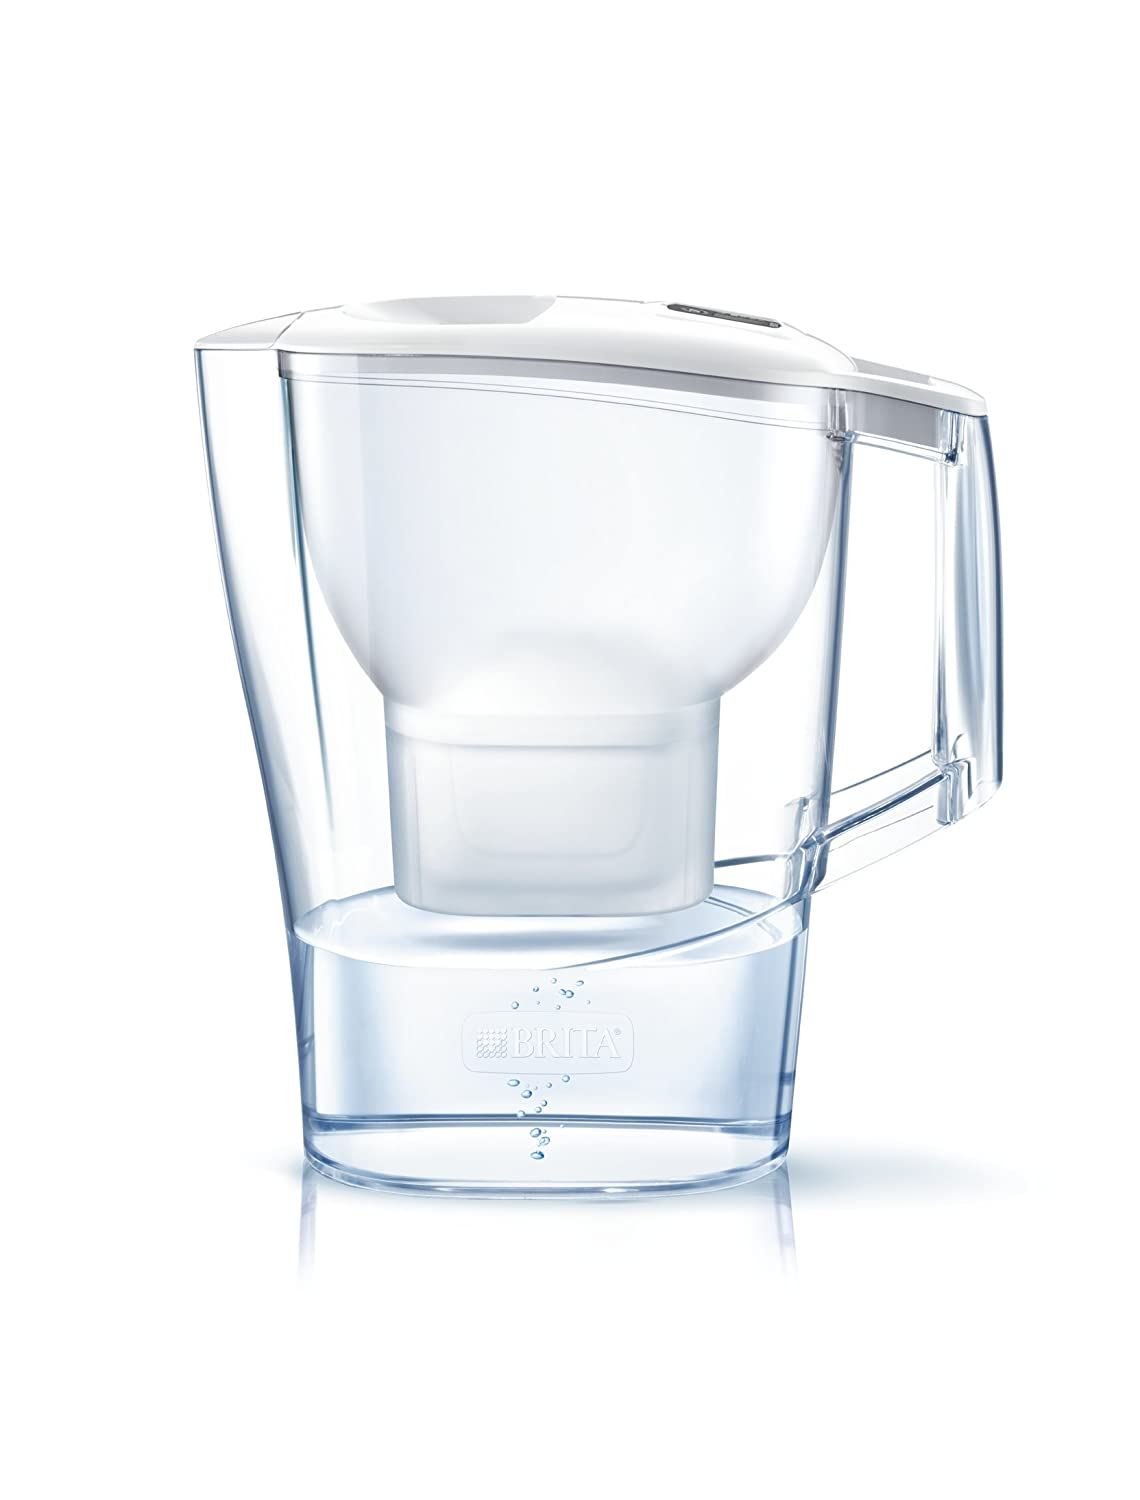 BRITA Aluna Cool White Water Filter Jug with Maxtra +, White 1023719